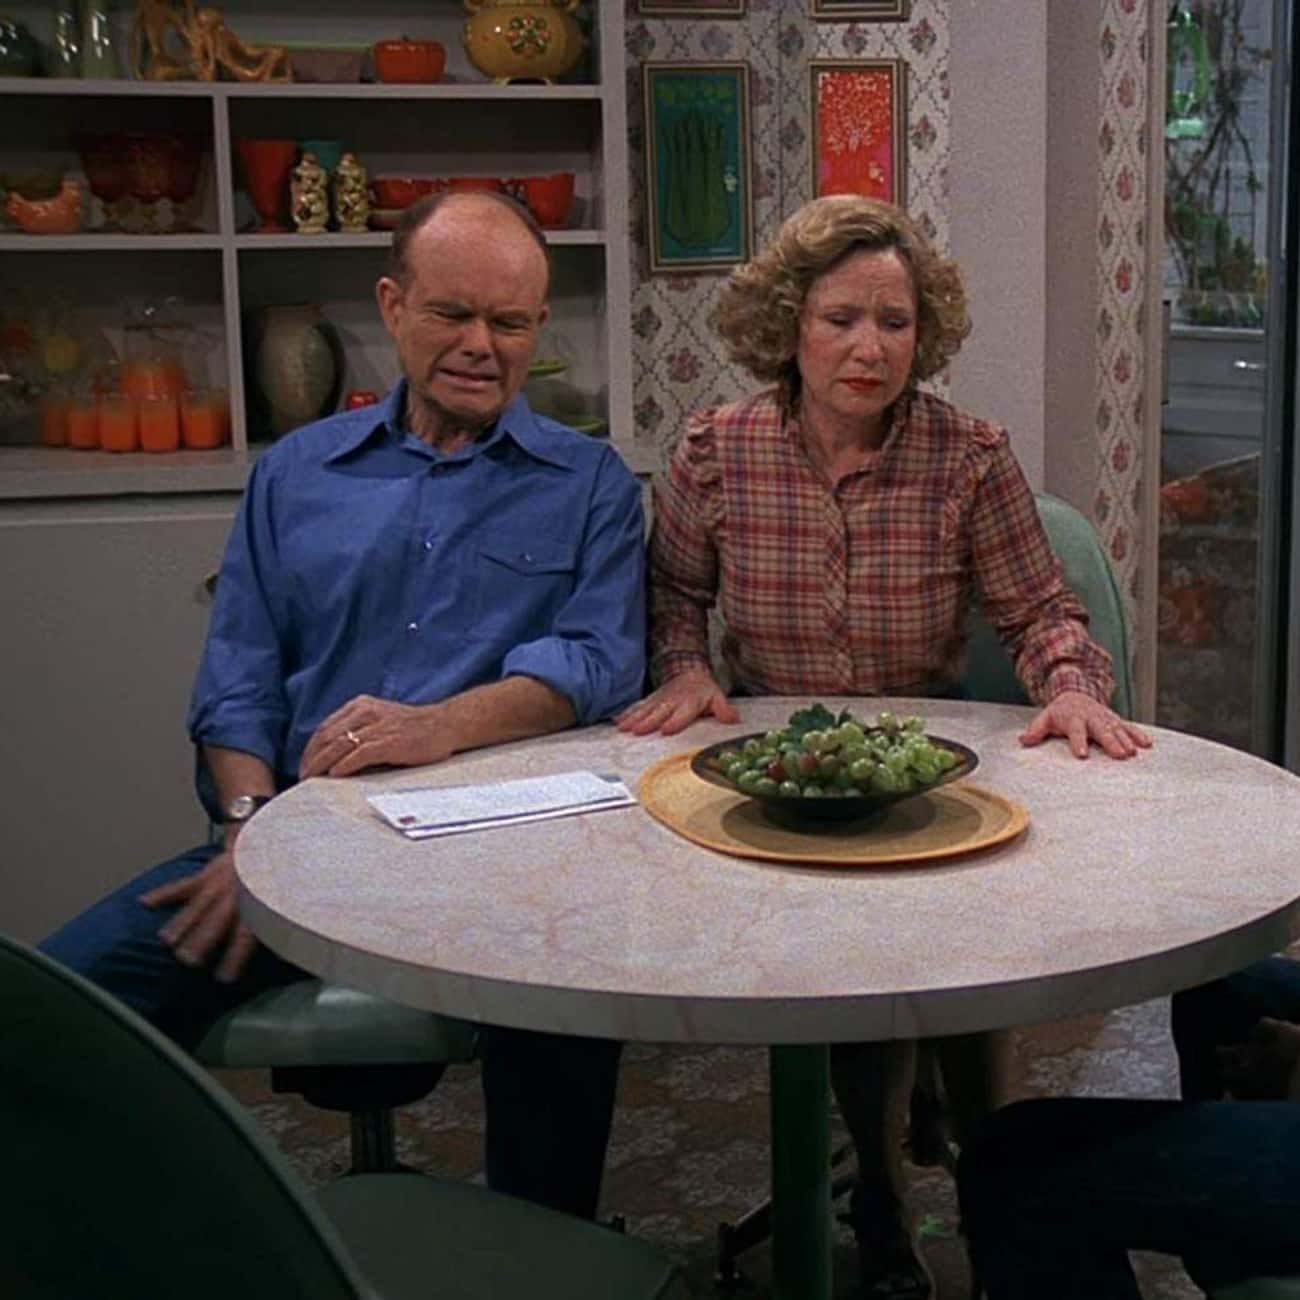 Didn't Think You Were Listenin is listed (or ranked) 4 on the list The Best Things Red Forman Ever Said